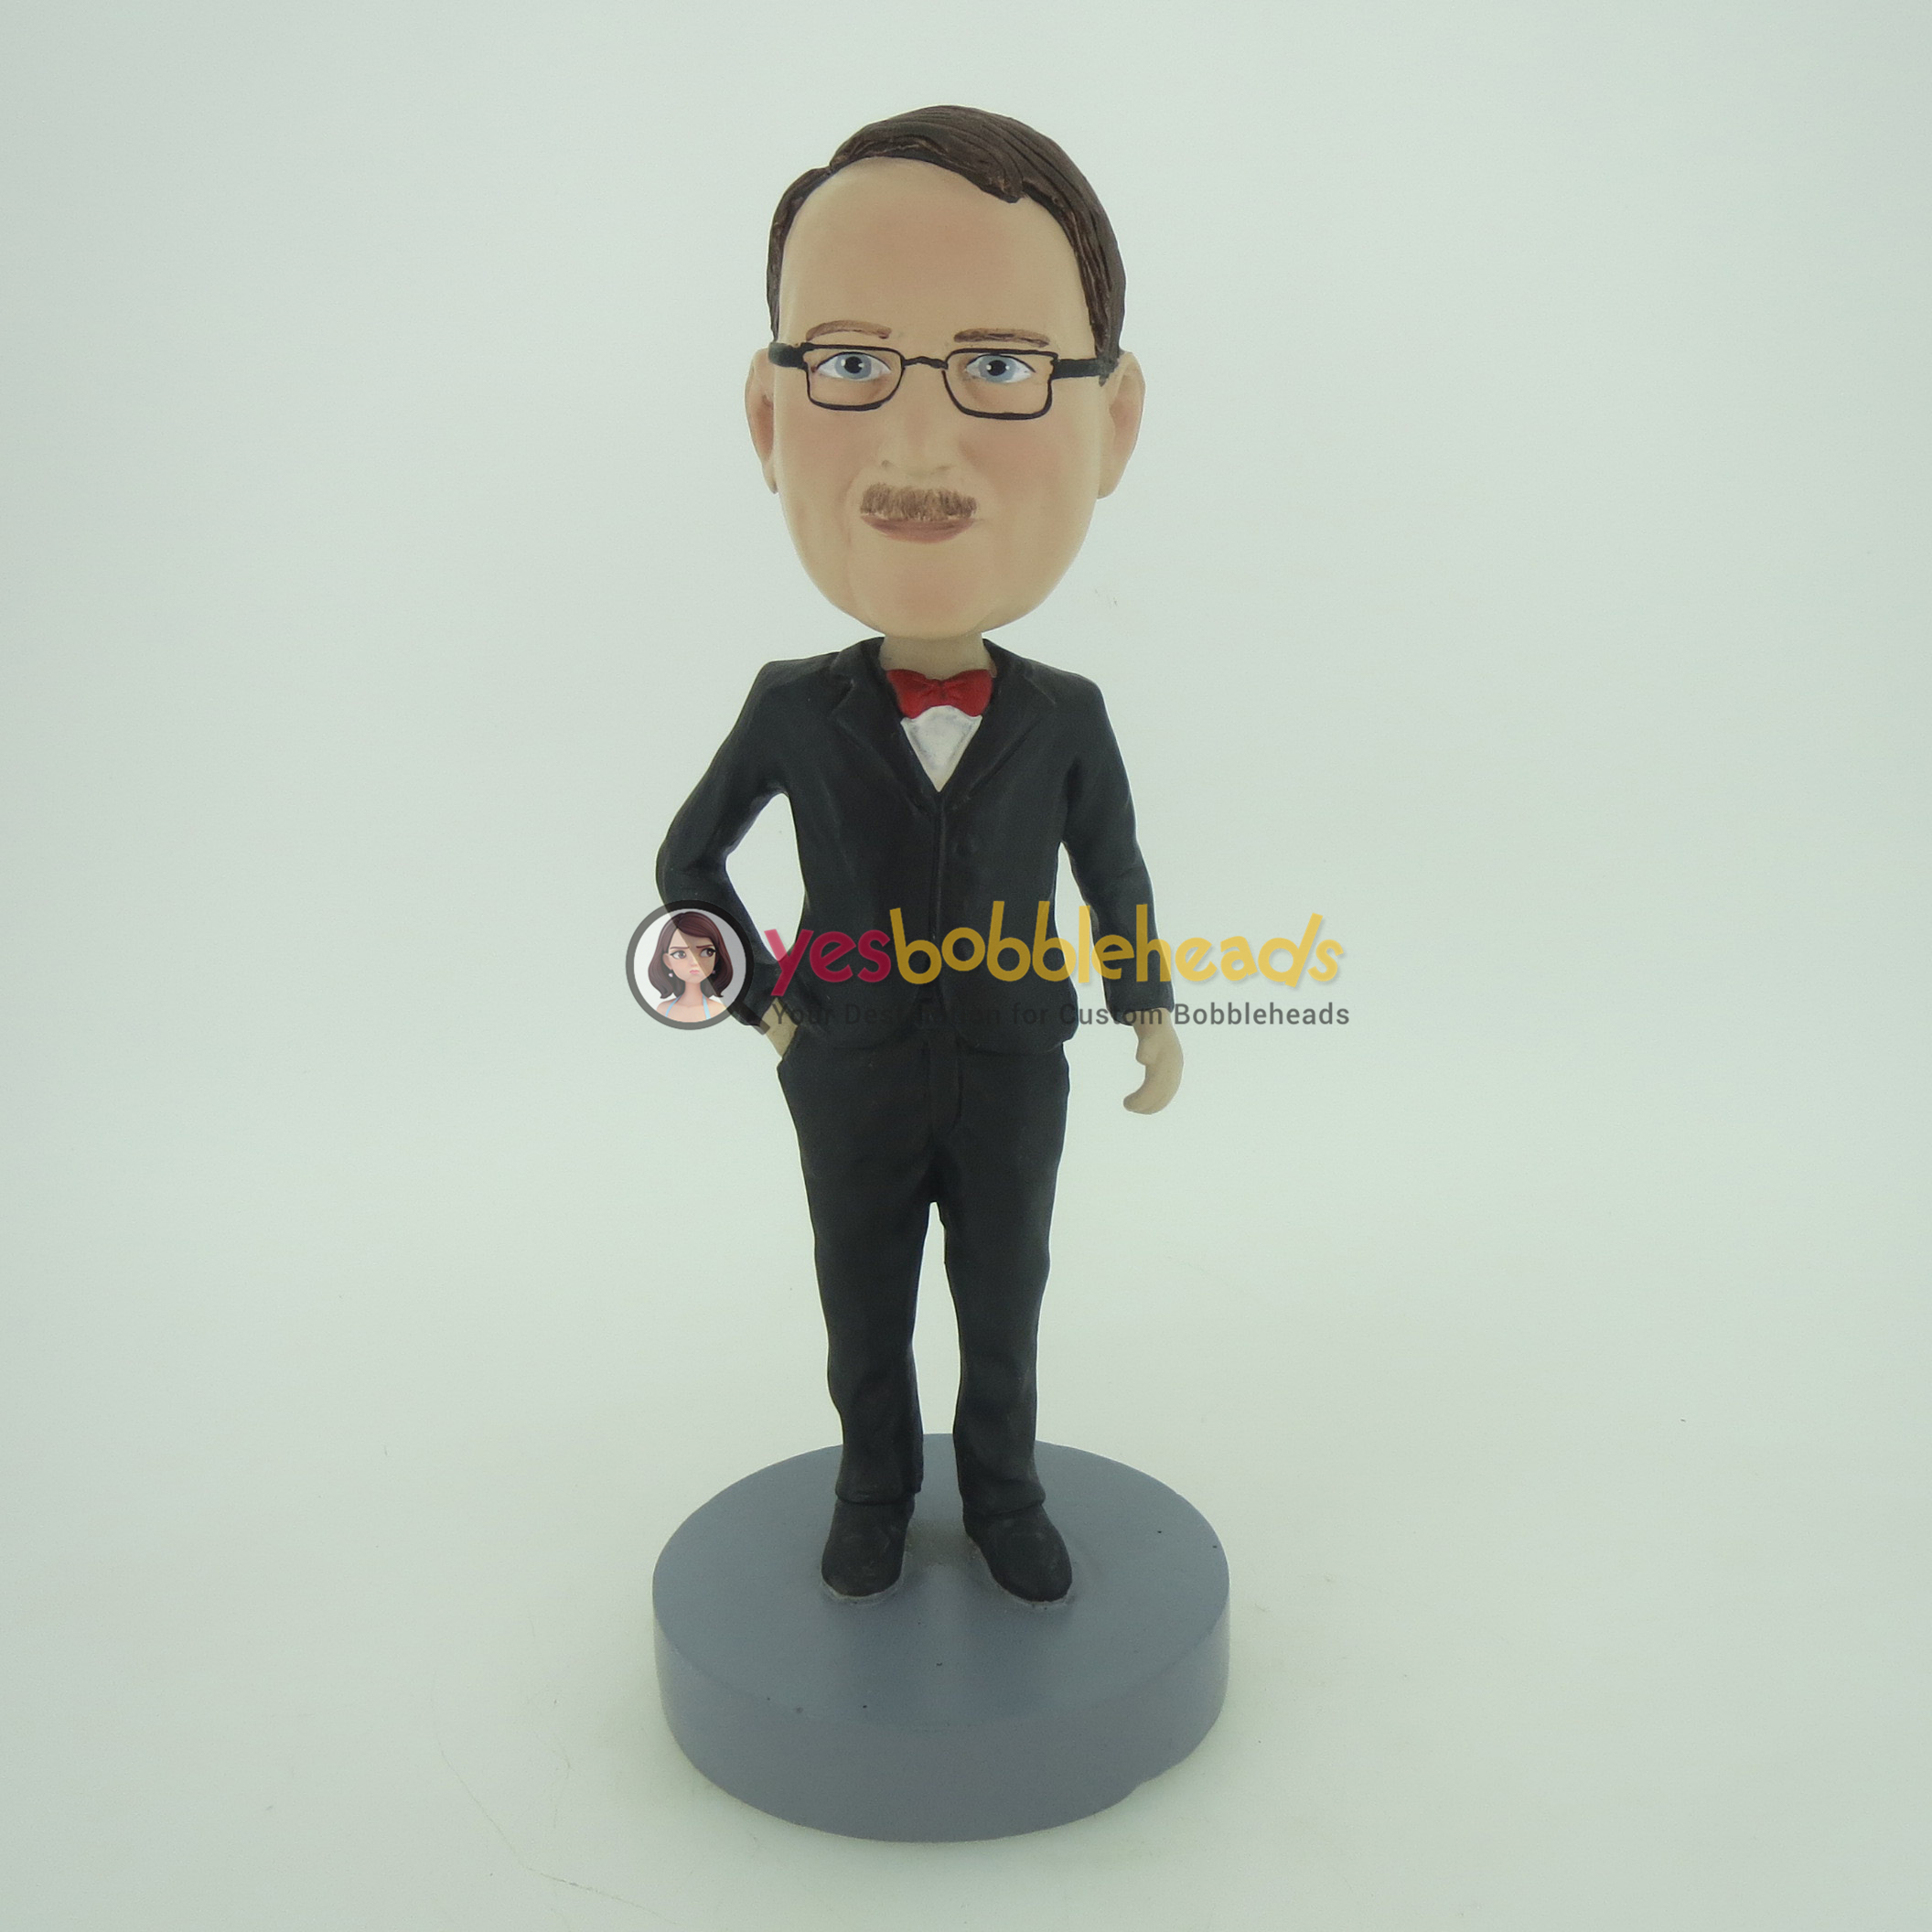 Picture of Custom Bobblehead Doll: Man In Black Suit And Red Bow